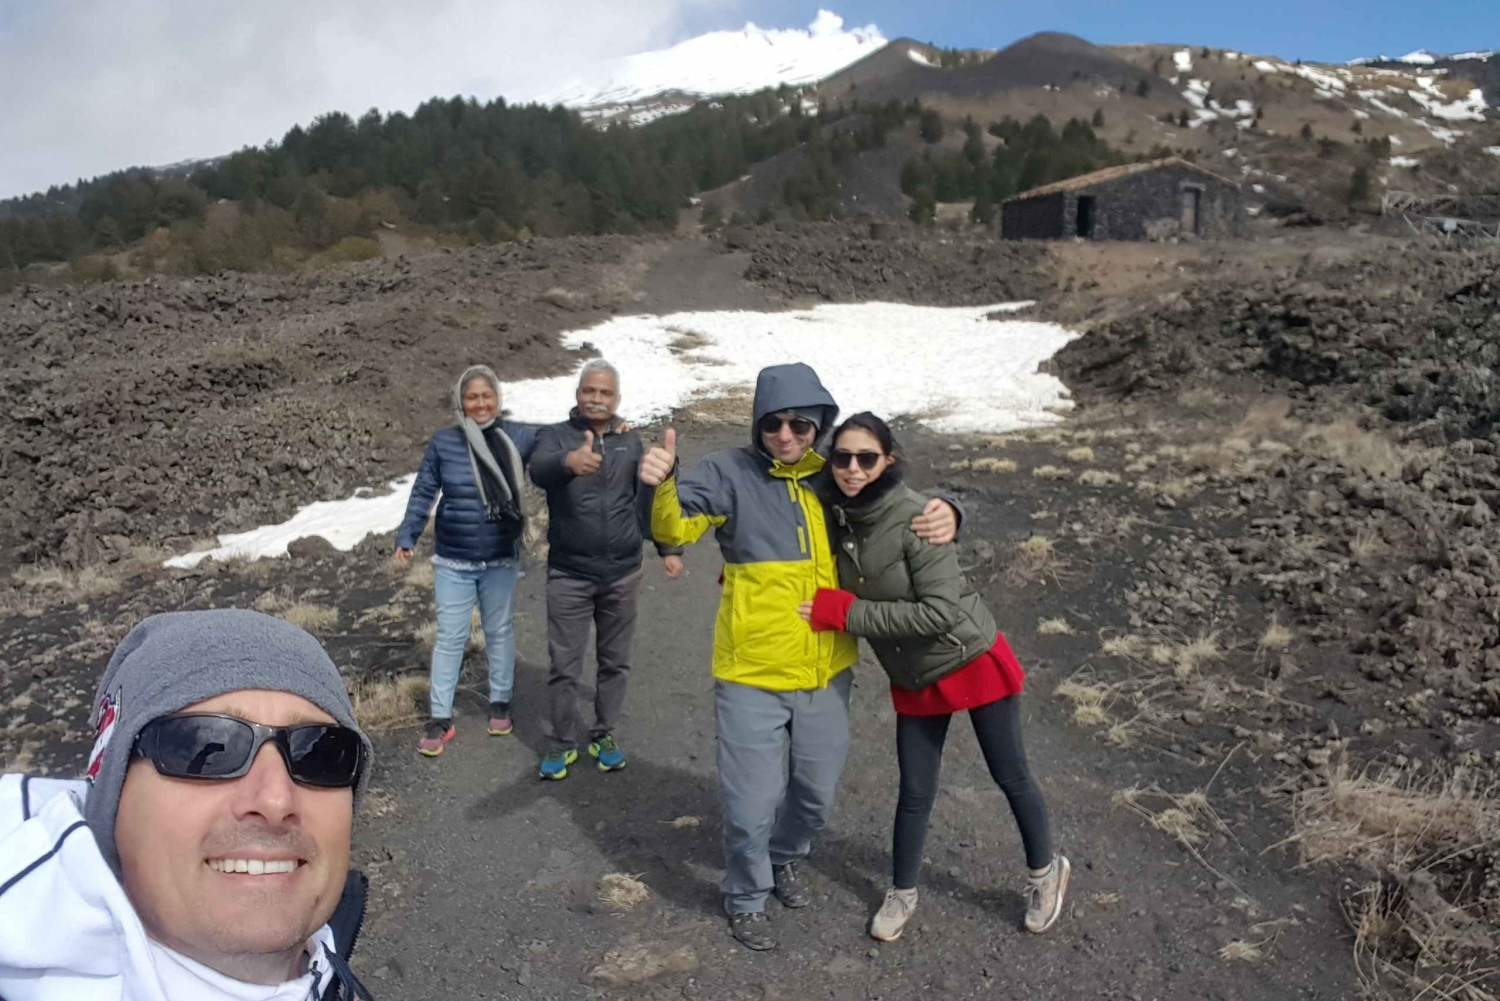 From Catania: Trek through Etna, Acireale, and Acitrezza